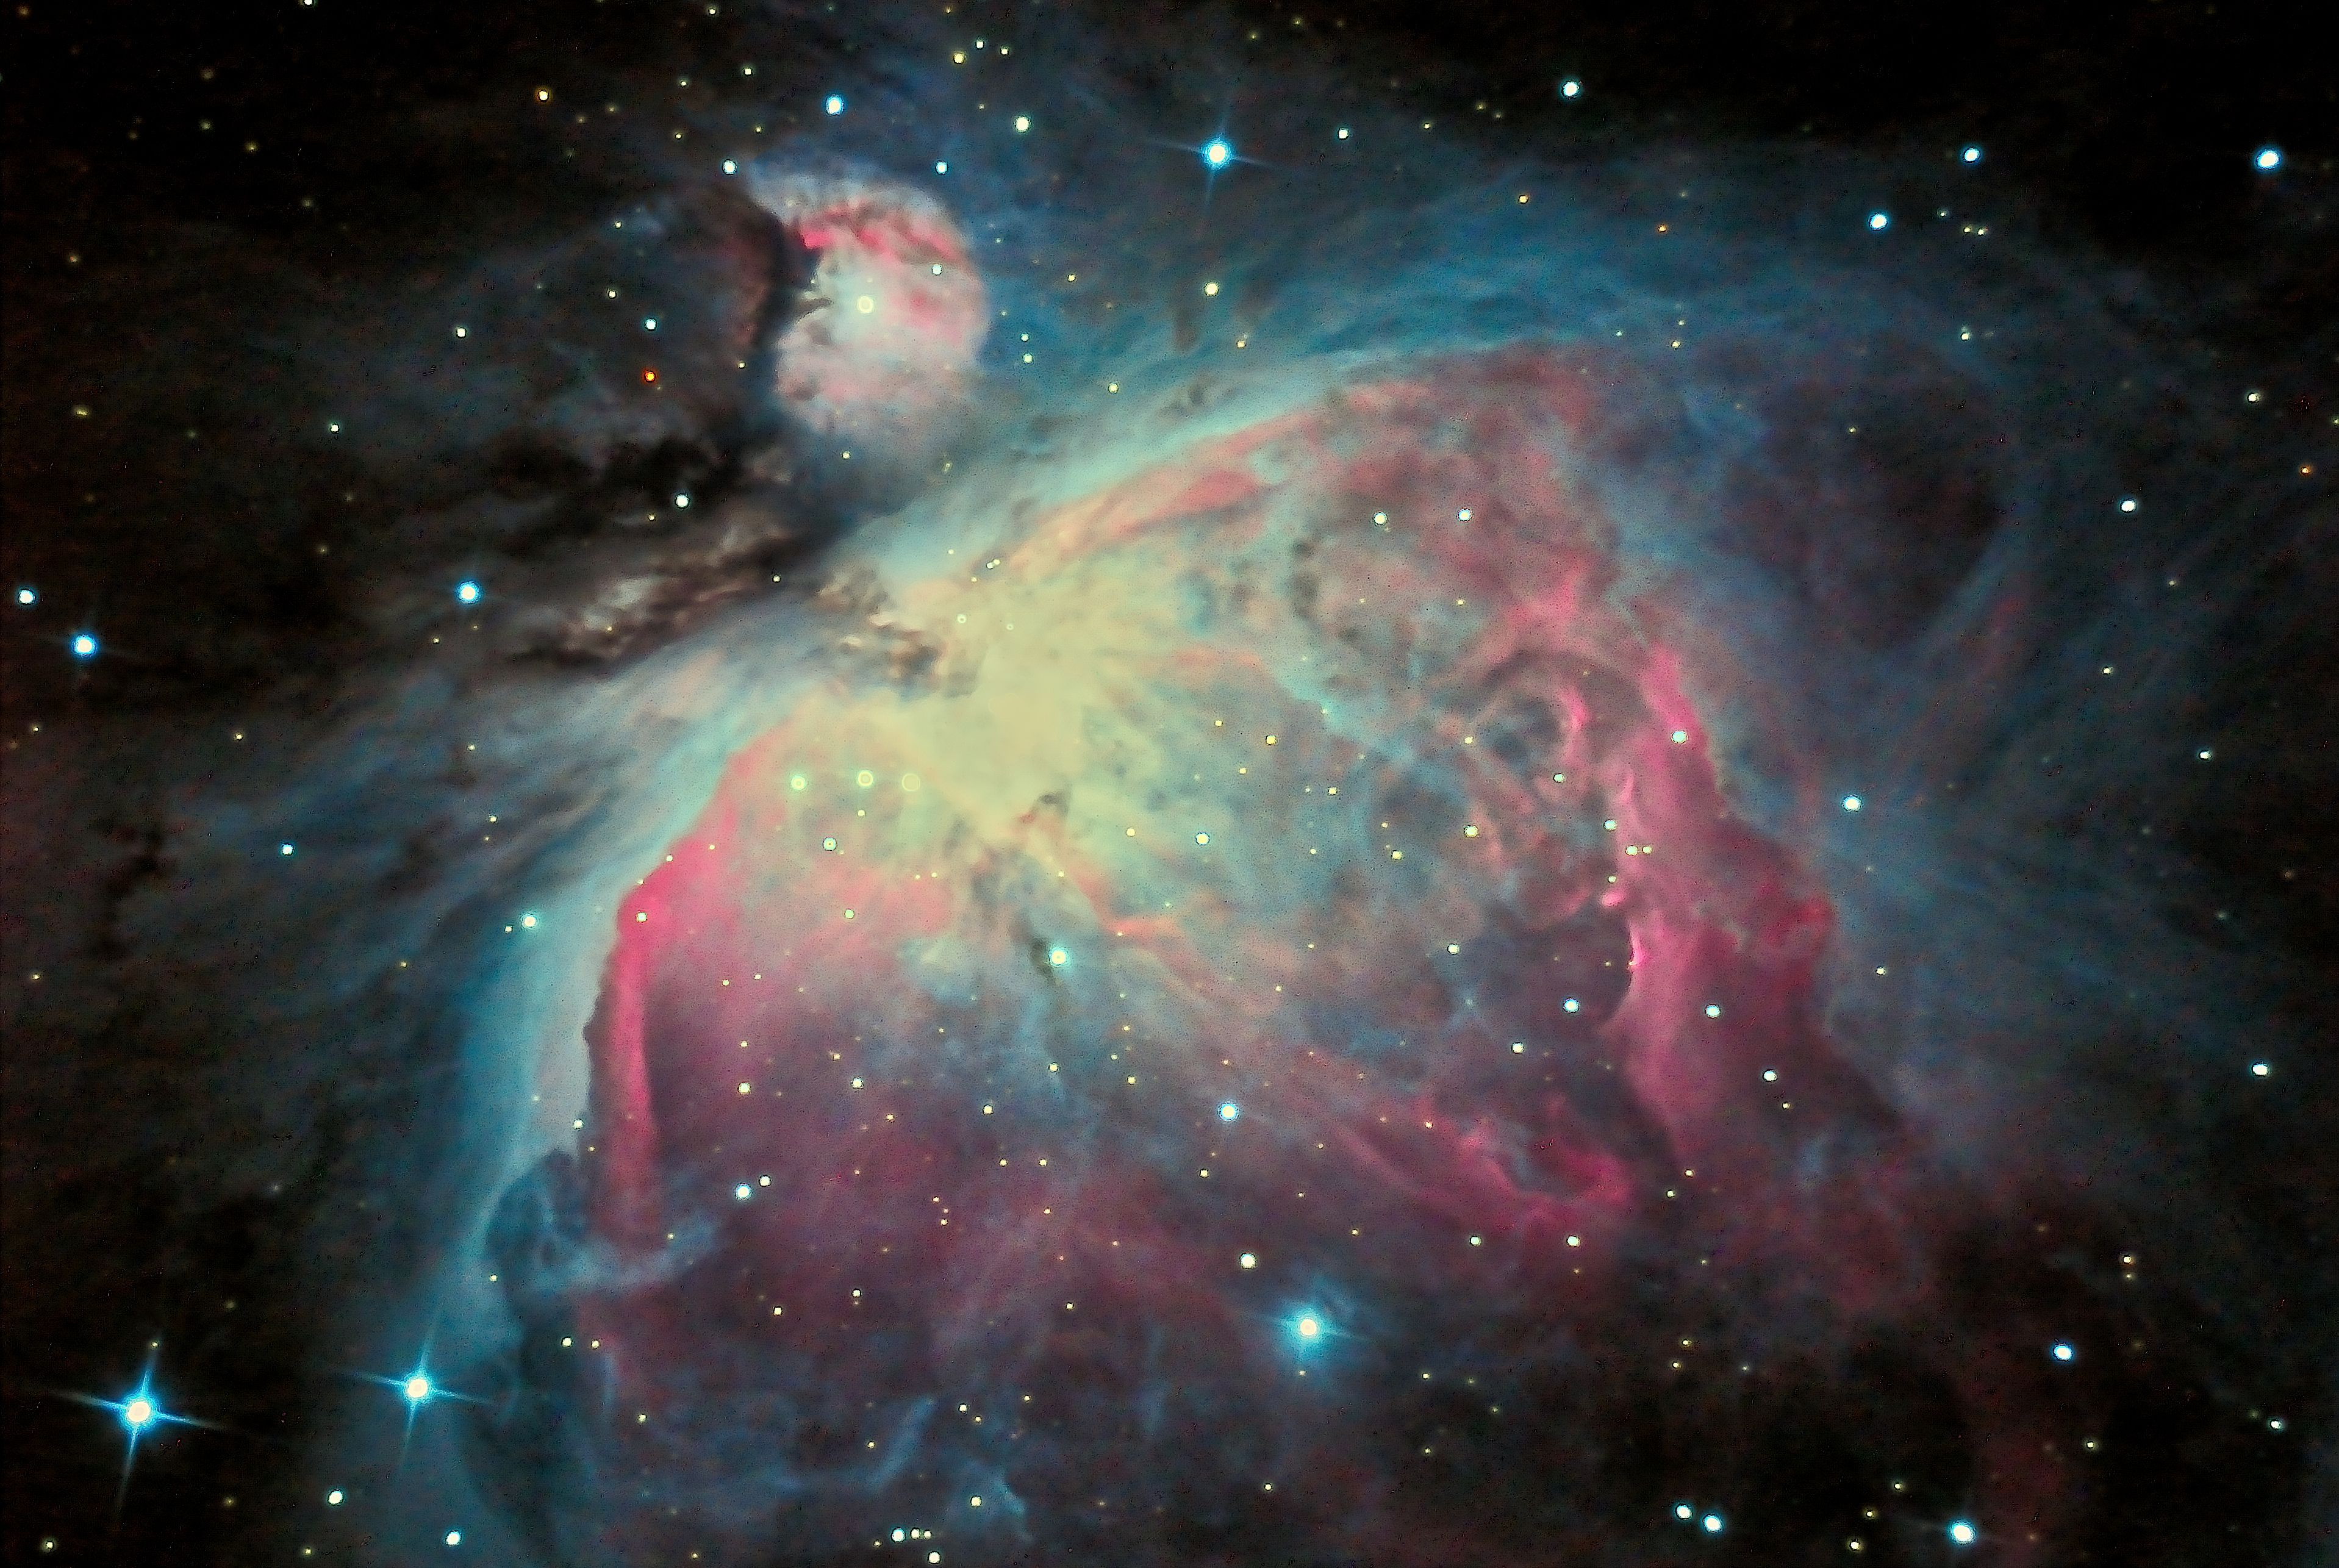 M42 - The Orion Nebula 1-4-14 at US Store